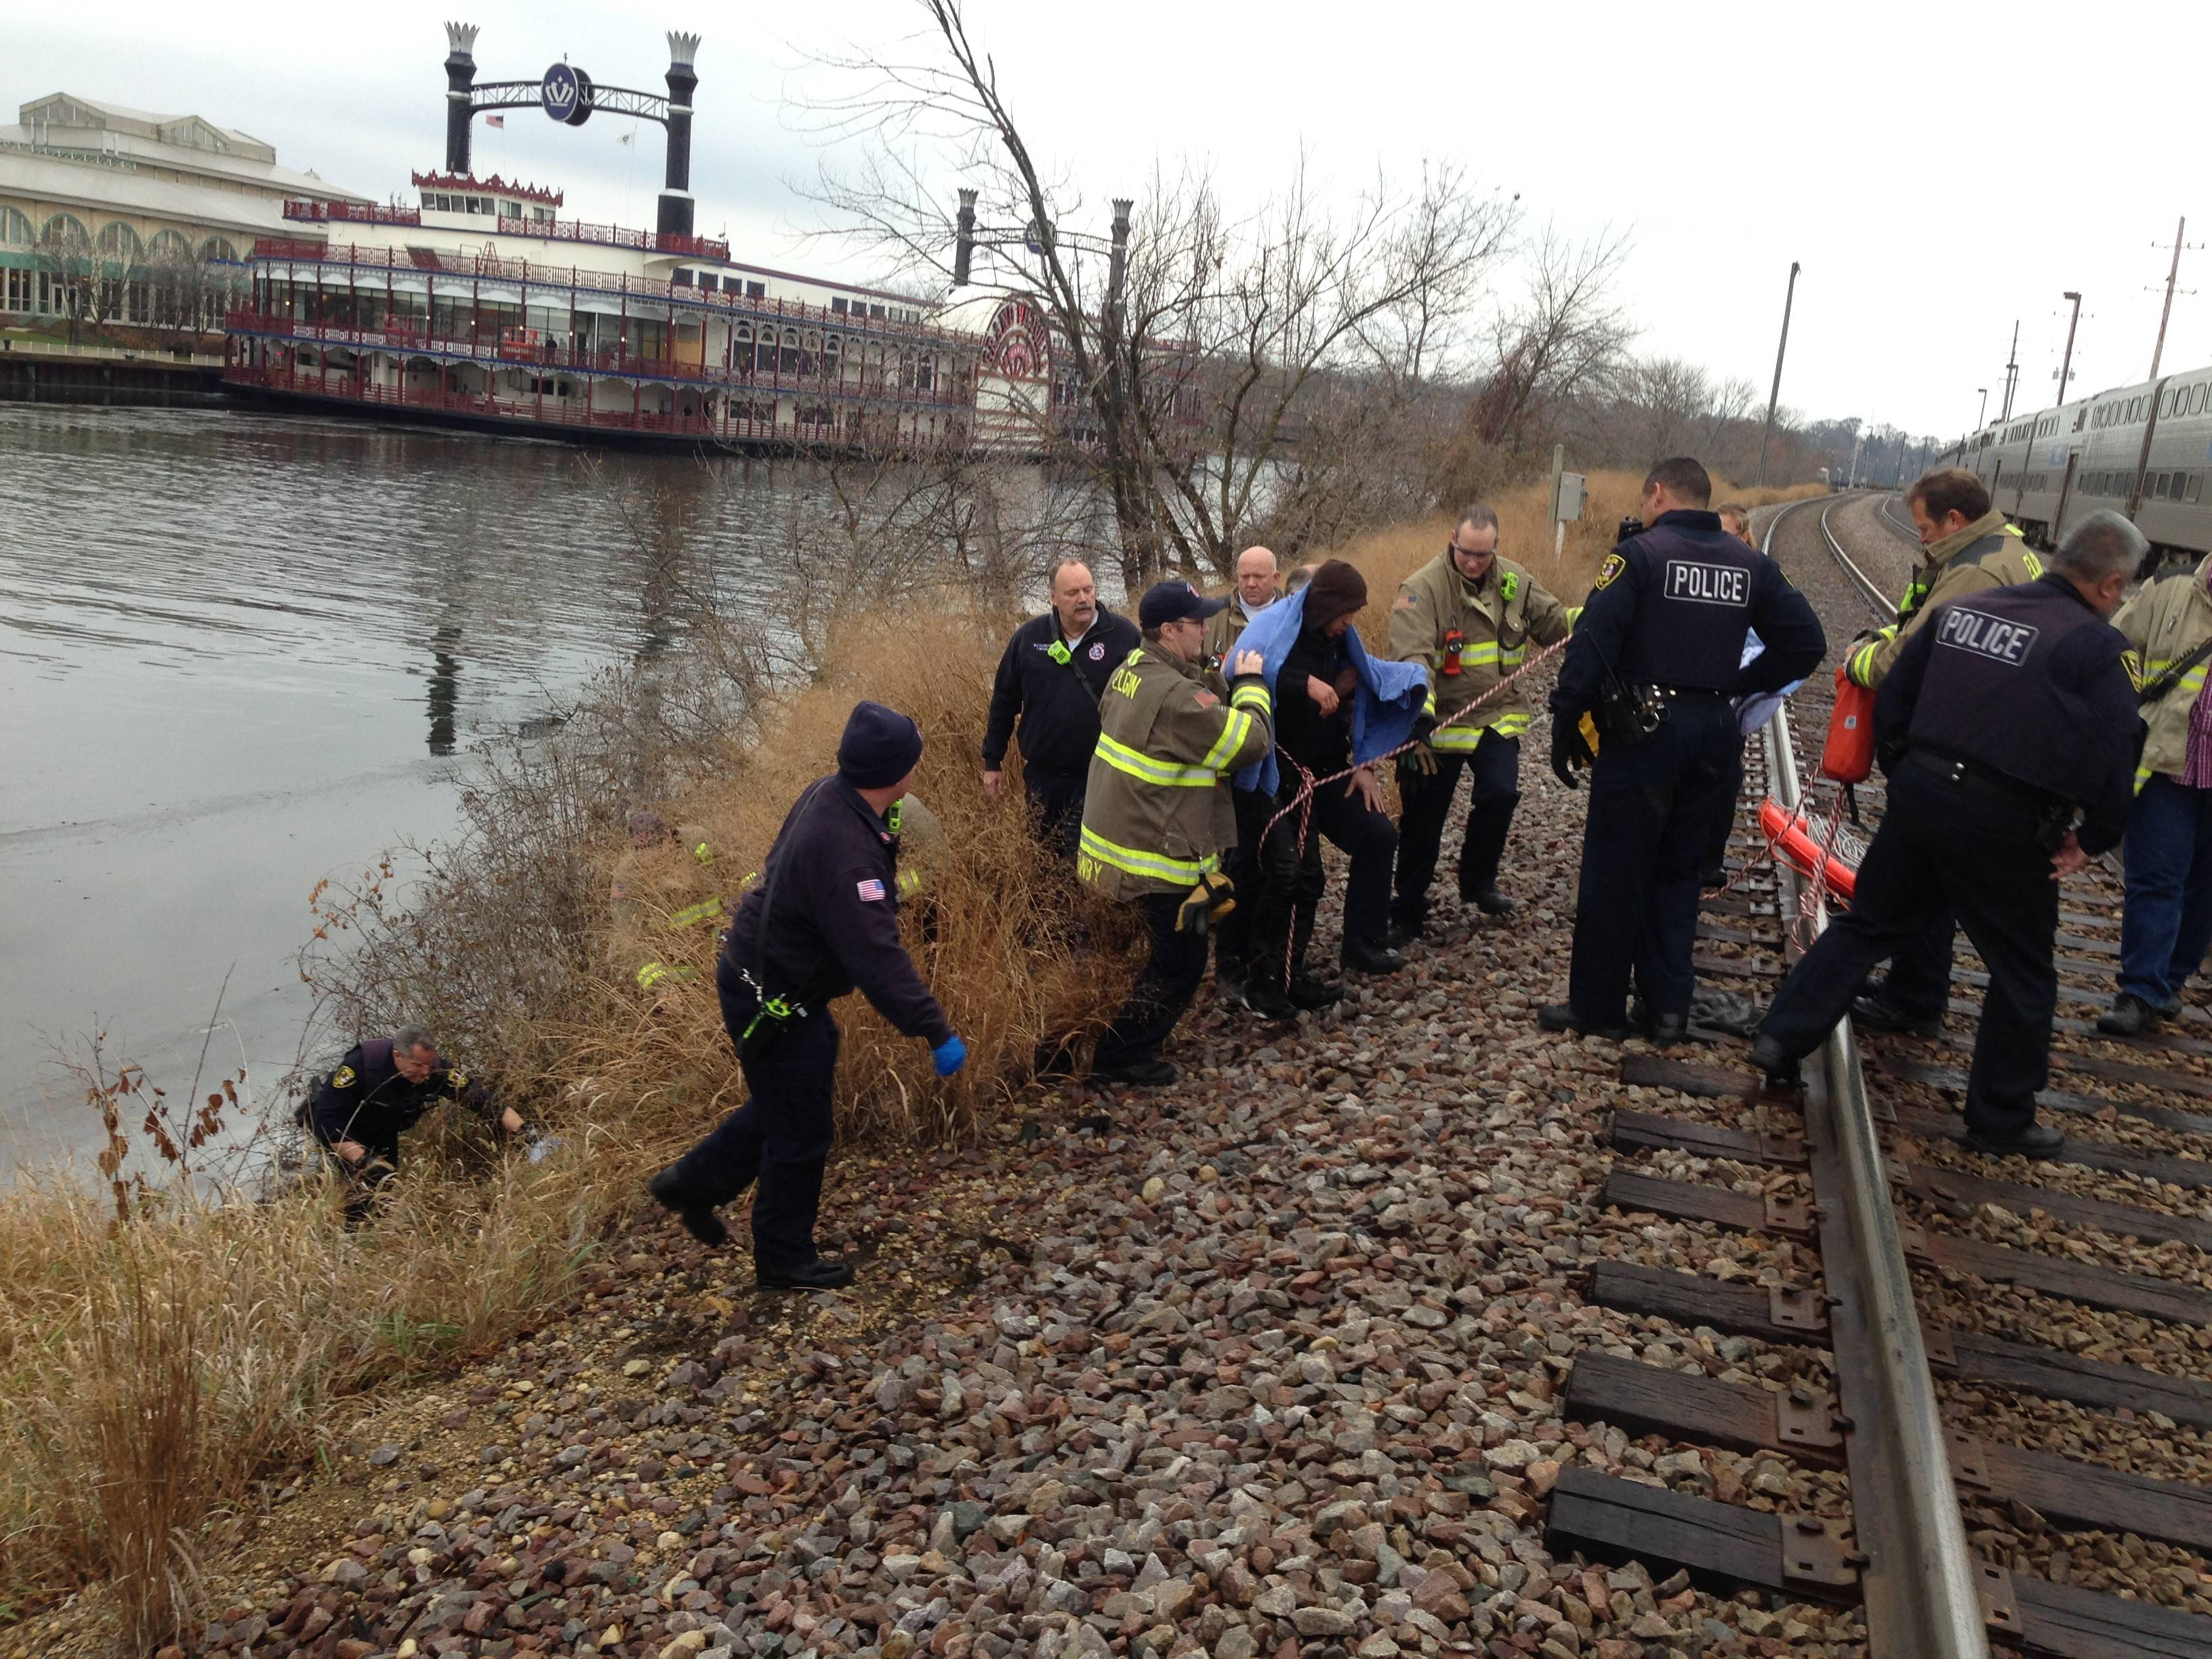 Members of the Elgin Police and Fire departments surround Melvin Ramsey, 20, of Elgin, after pulling him from the chilly Fox River Sunday morning. Ramsey fell into the river while fleeing from police officers trying to arrest him on outstanding warrants.